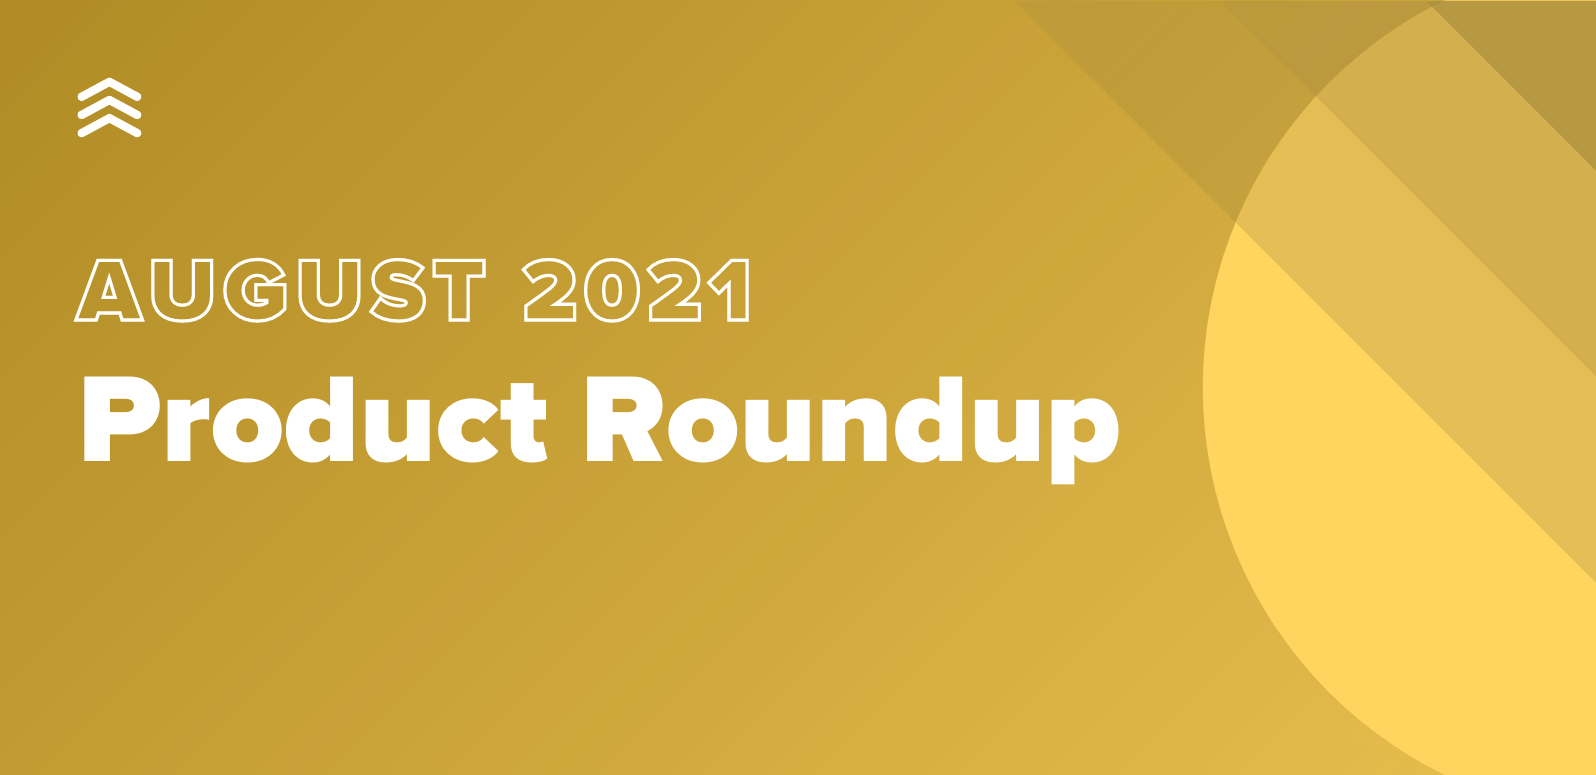 August 2021 Product Roundup